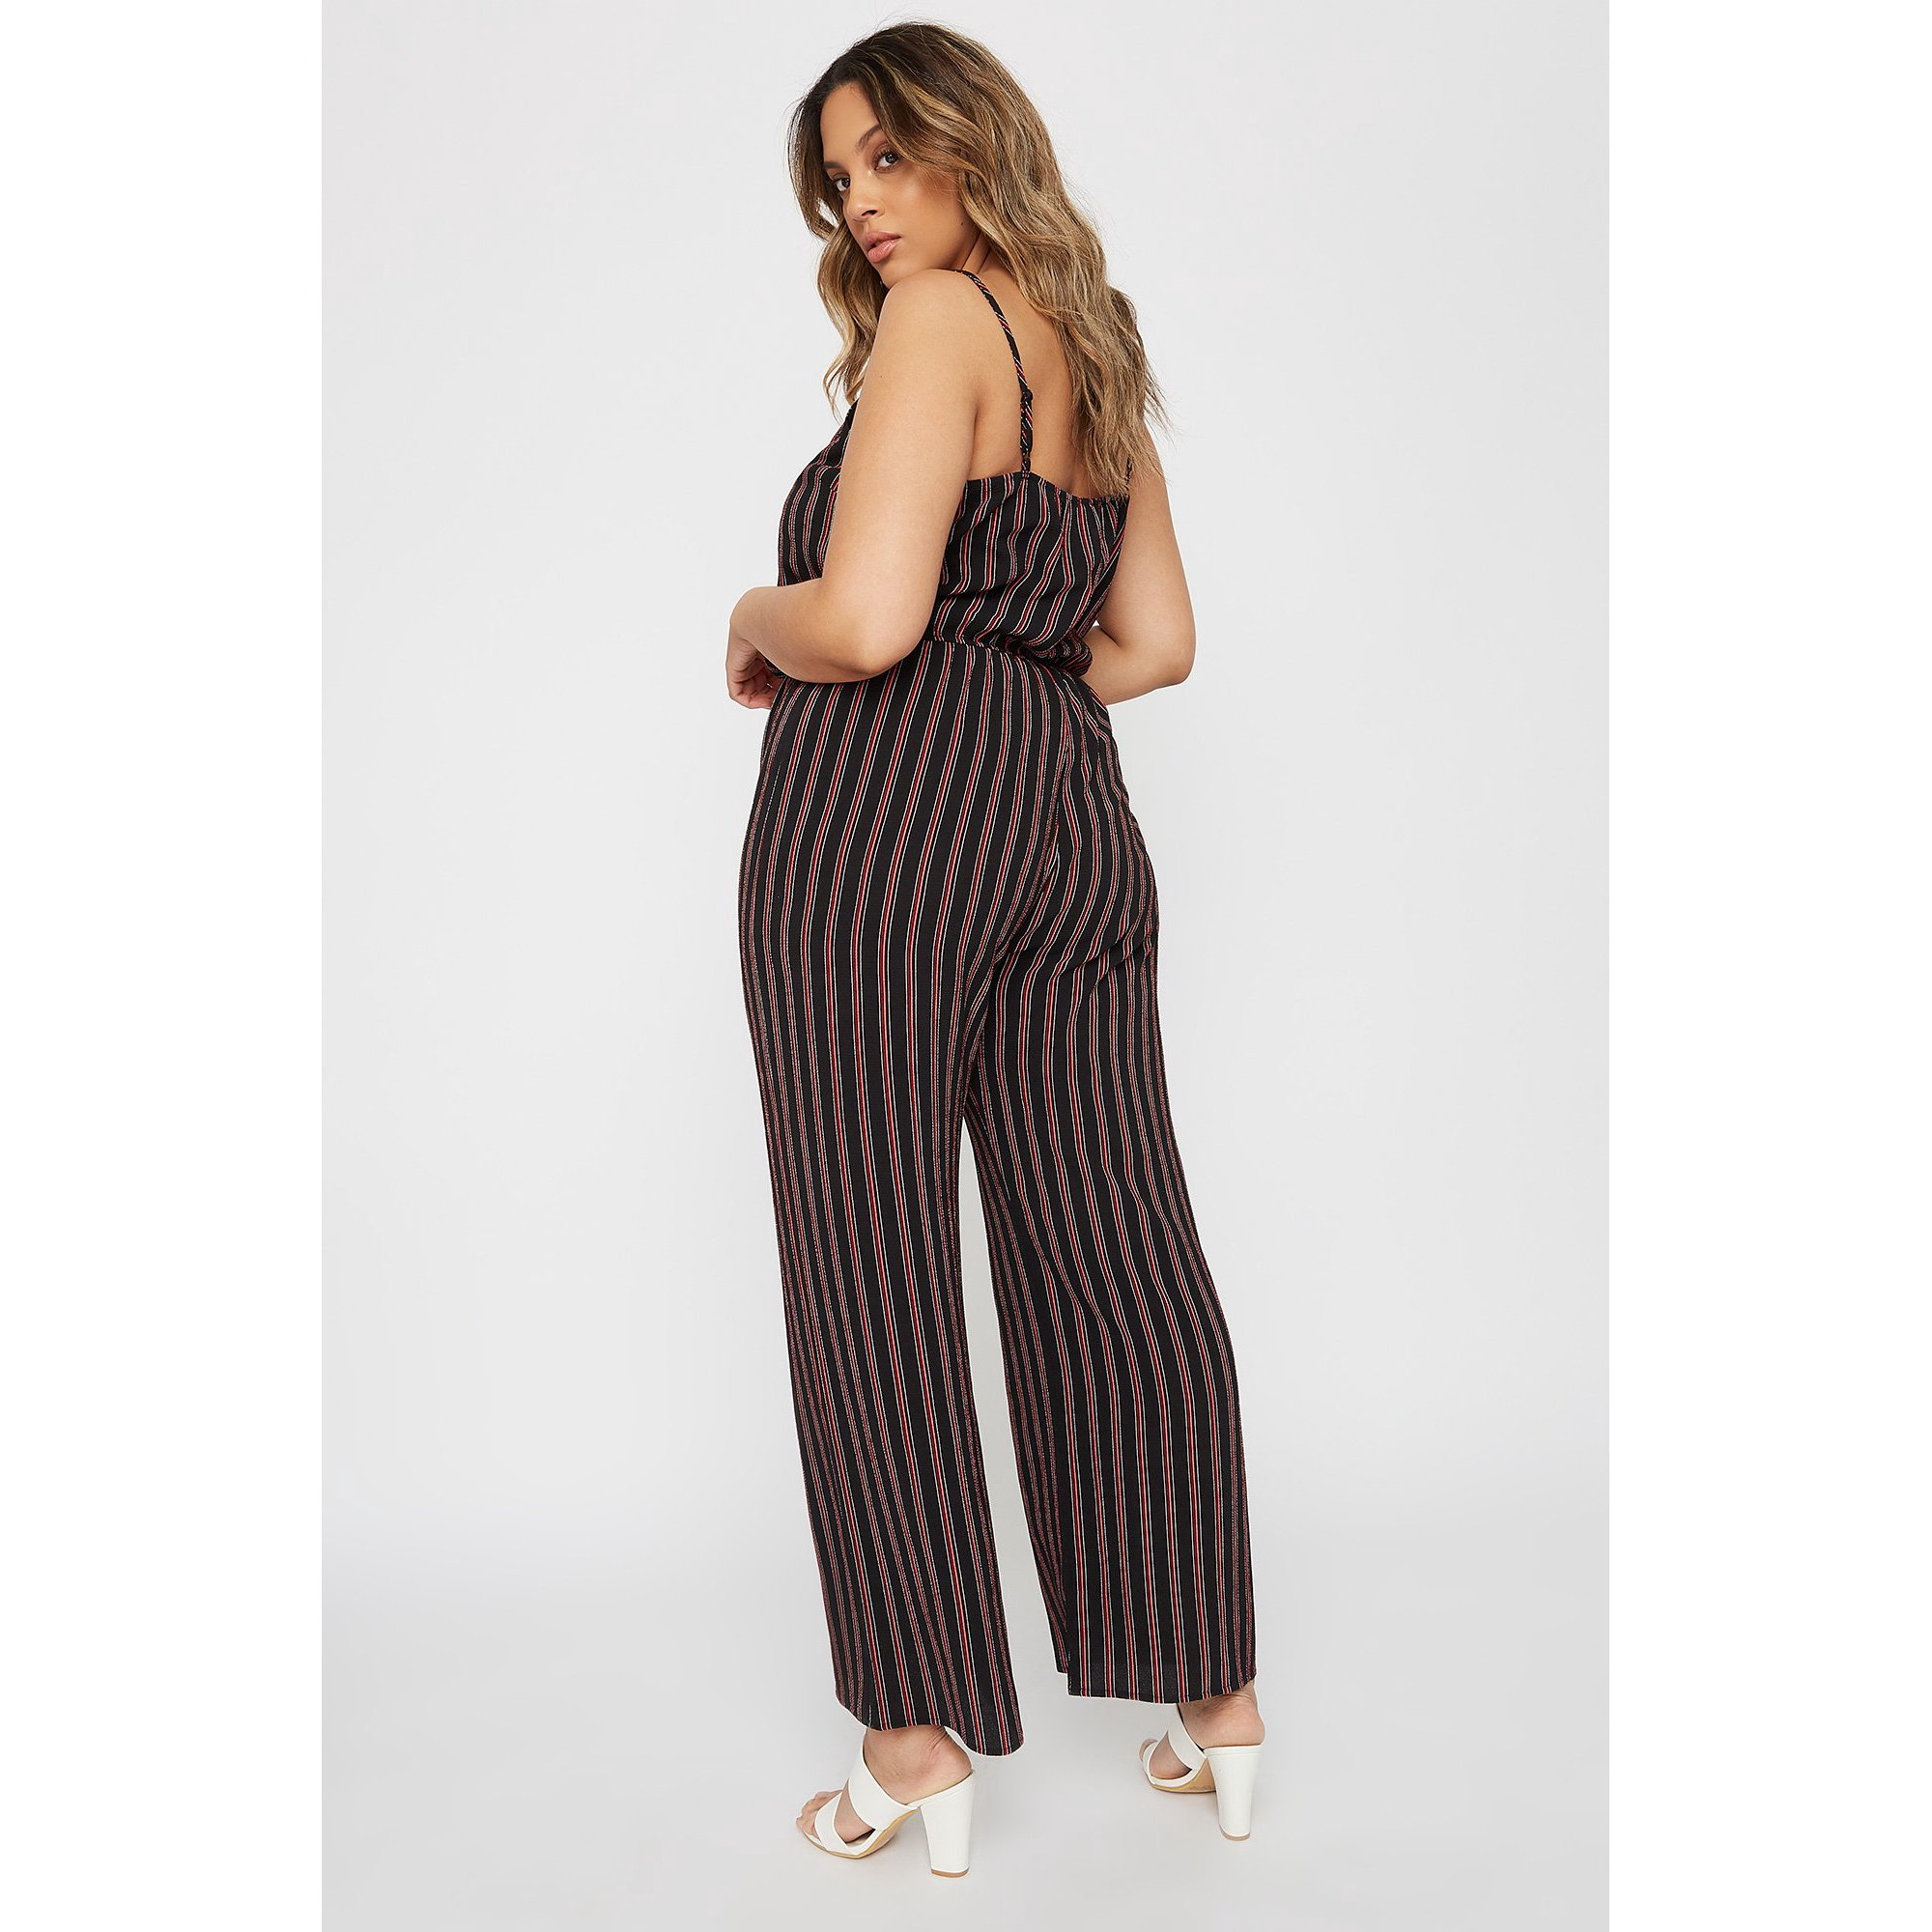 99468e33e Plus Size Womens Summer Jumpsuits | Saddha